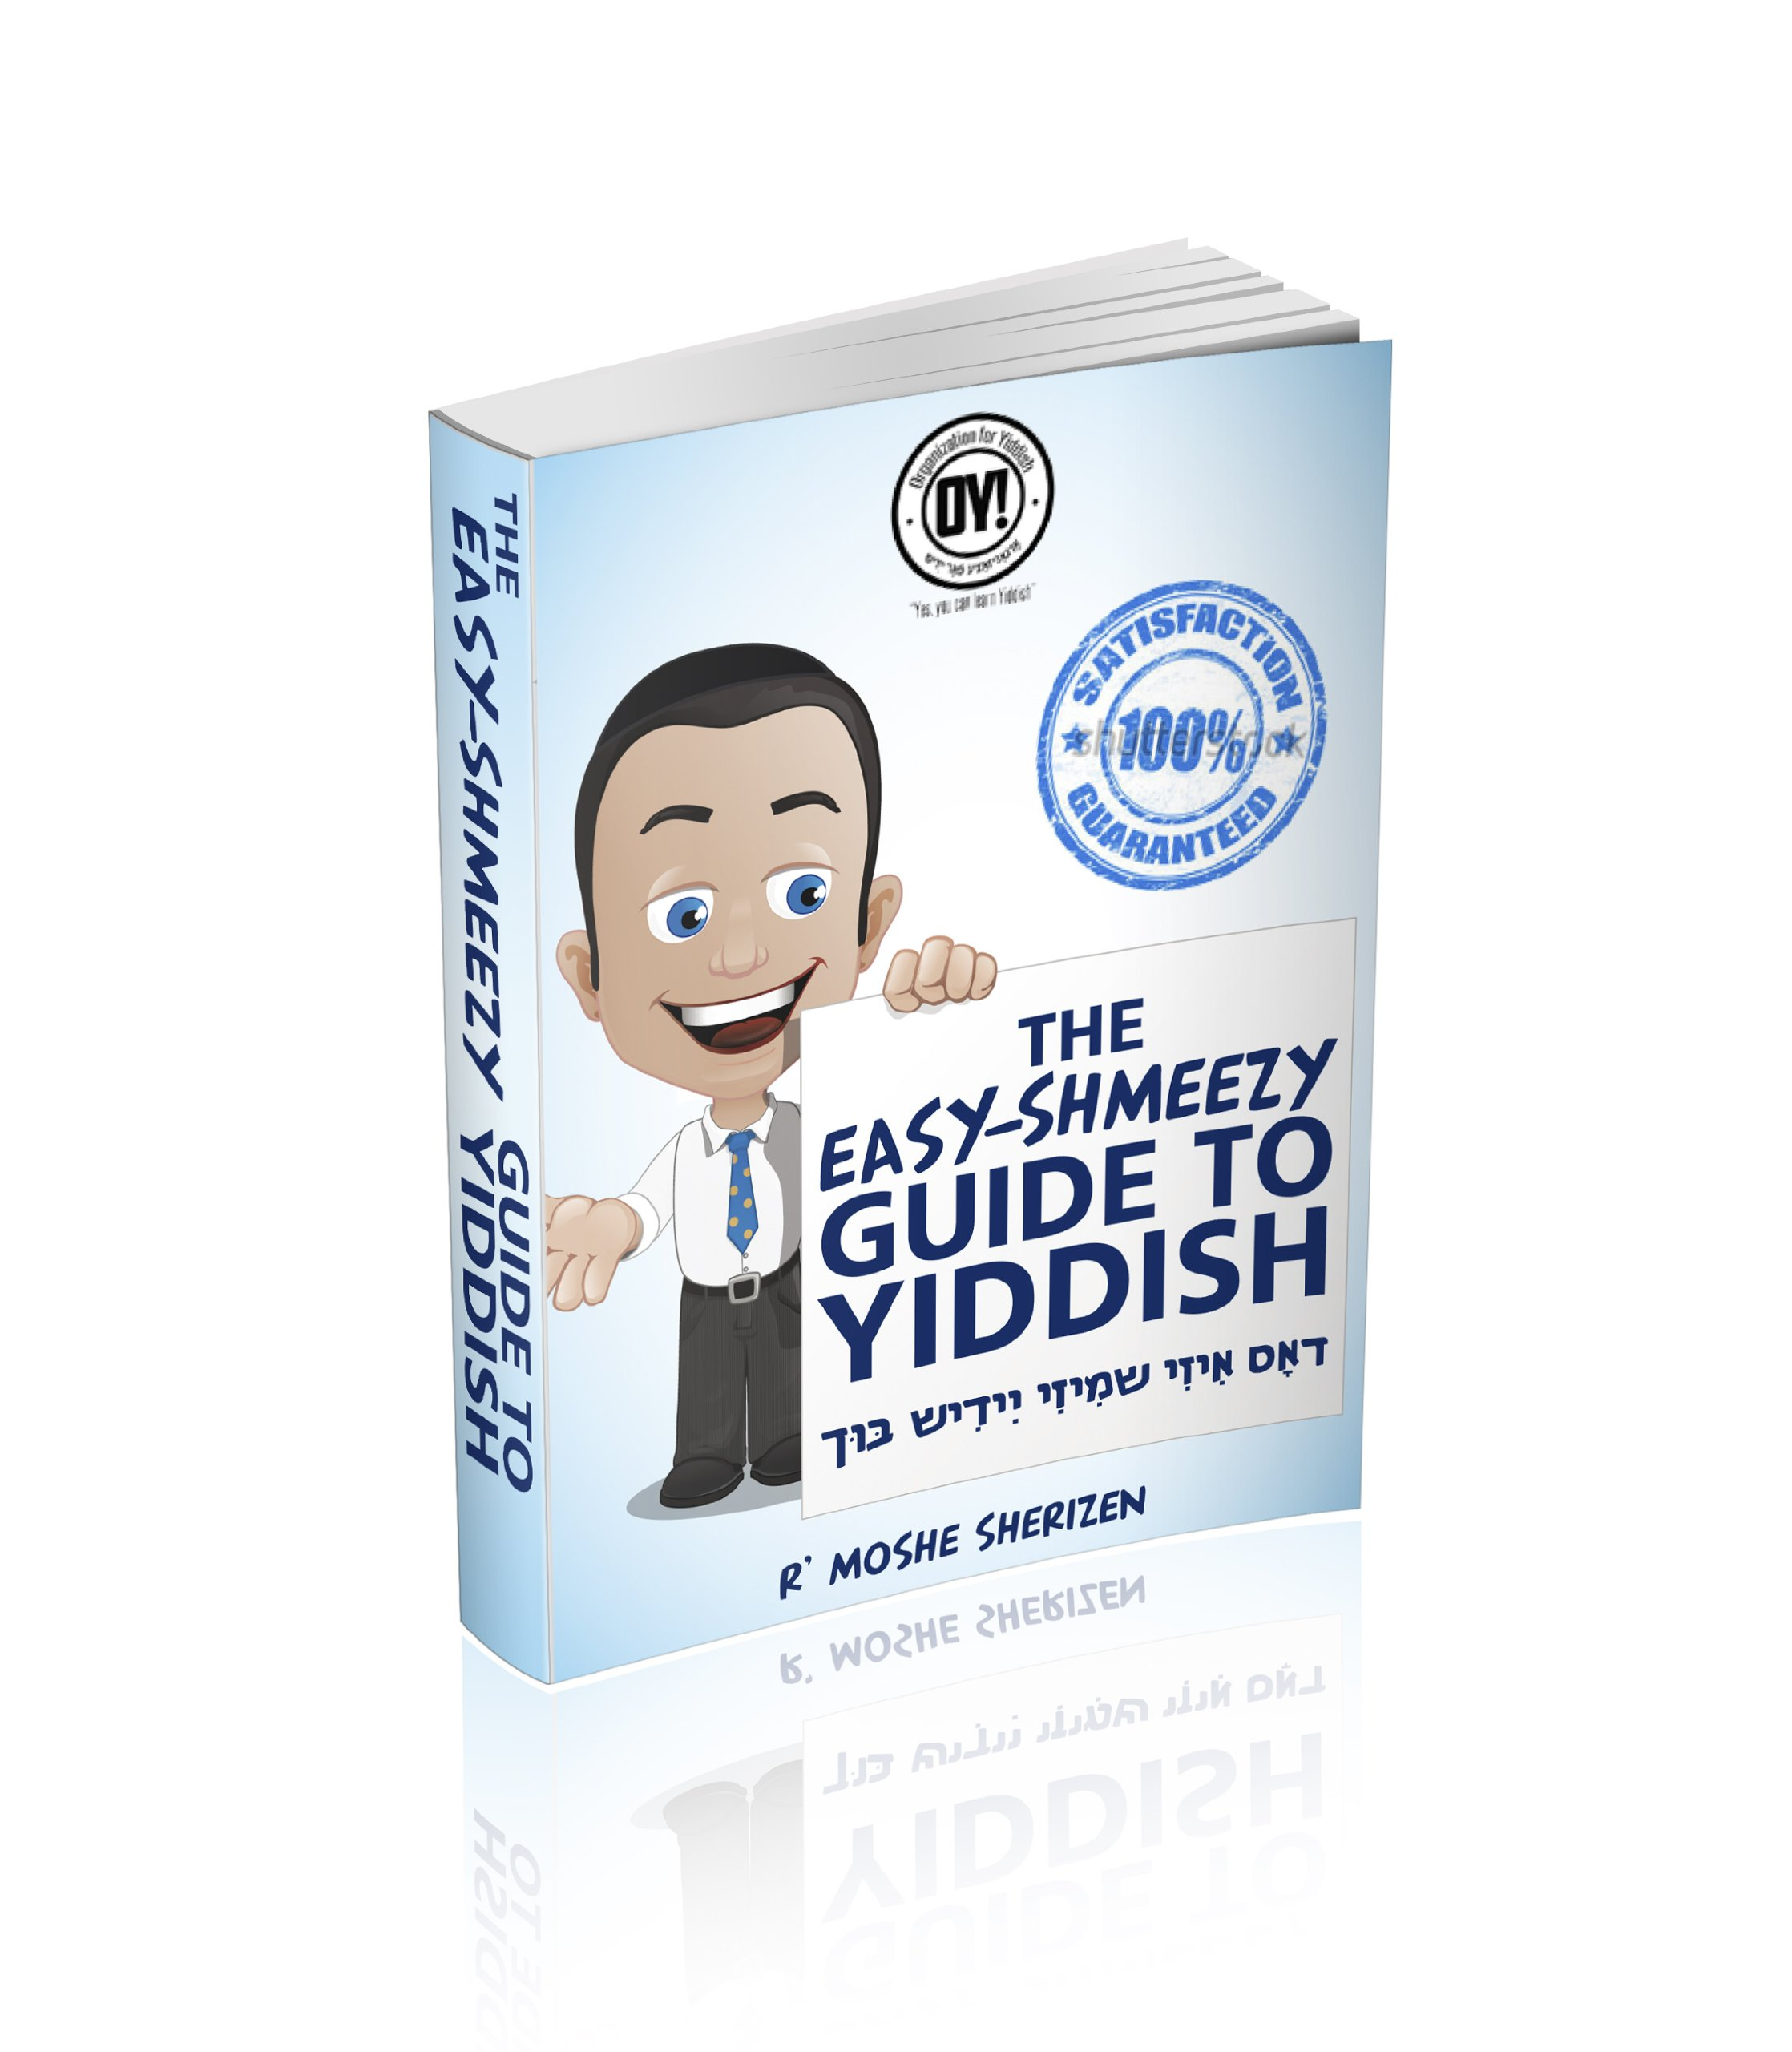 The Easy-Shmeezy Guide to Yiddish by Moshe Sherizen